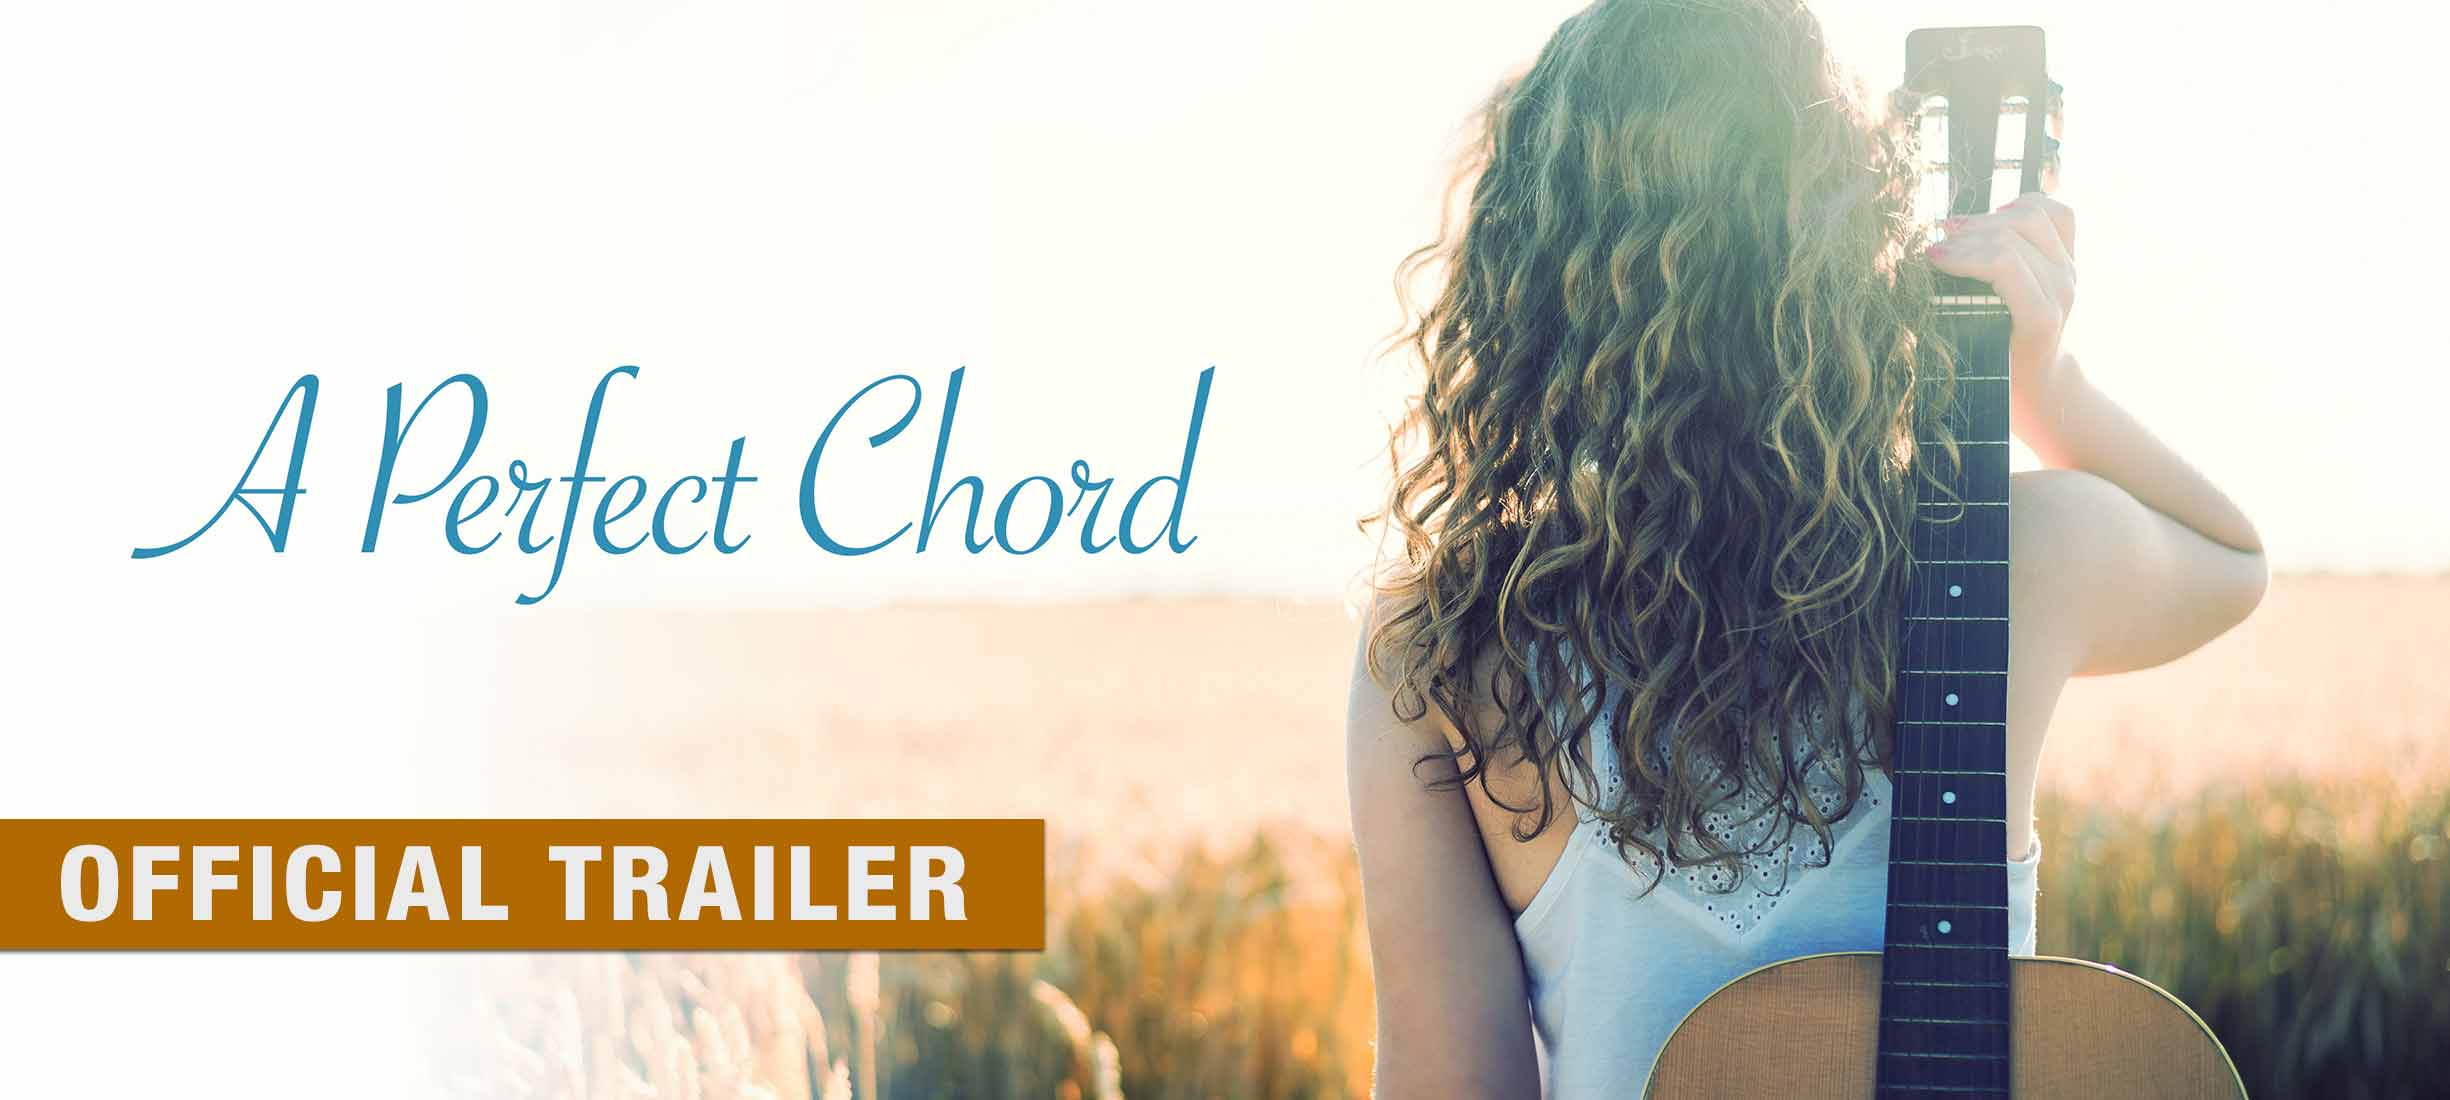 A Perfect Chord - Official Trailer